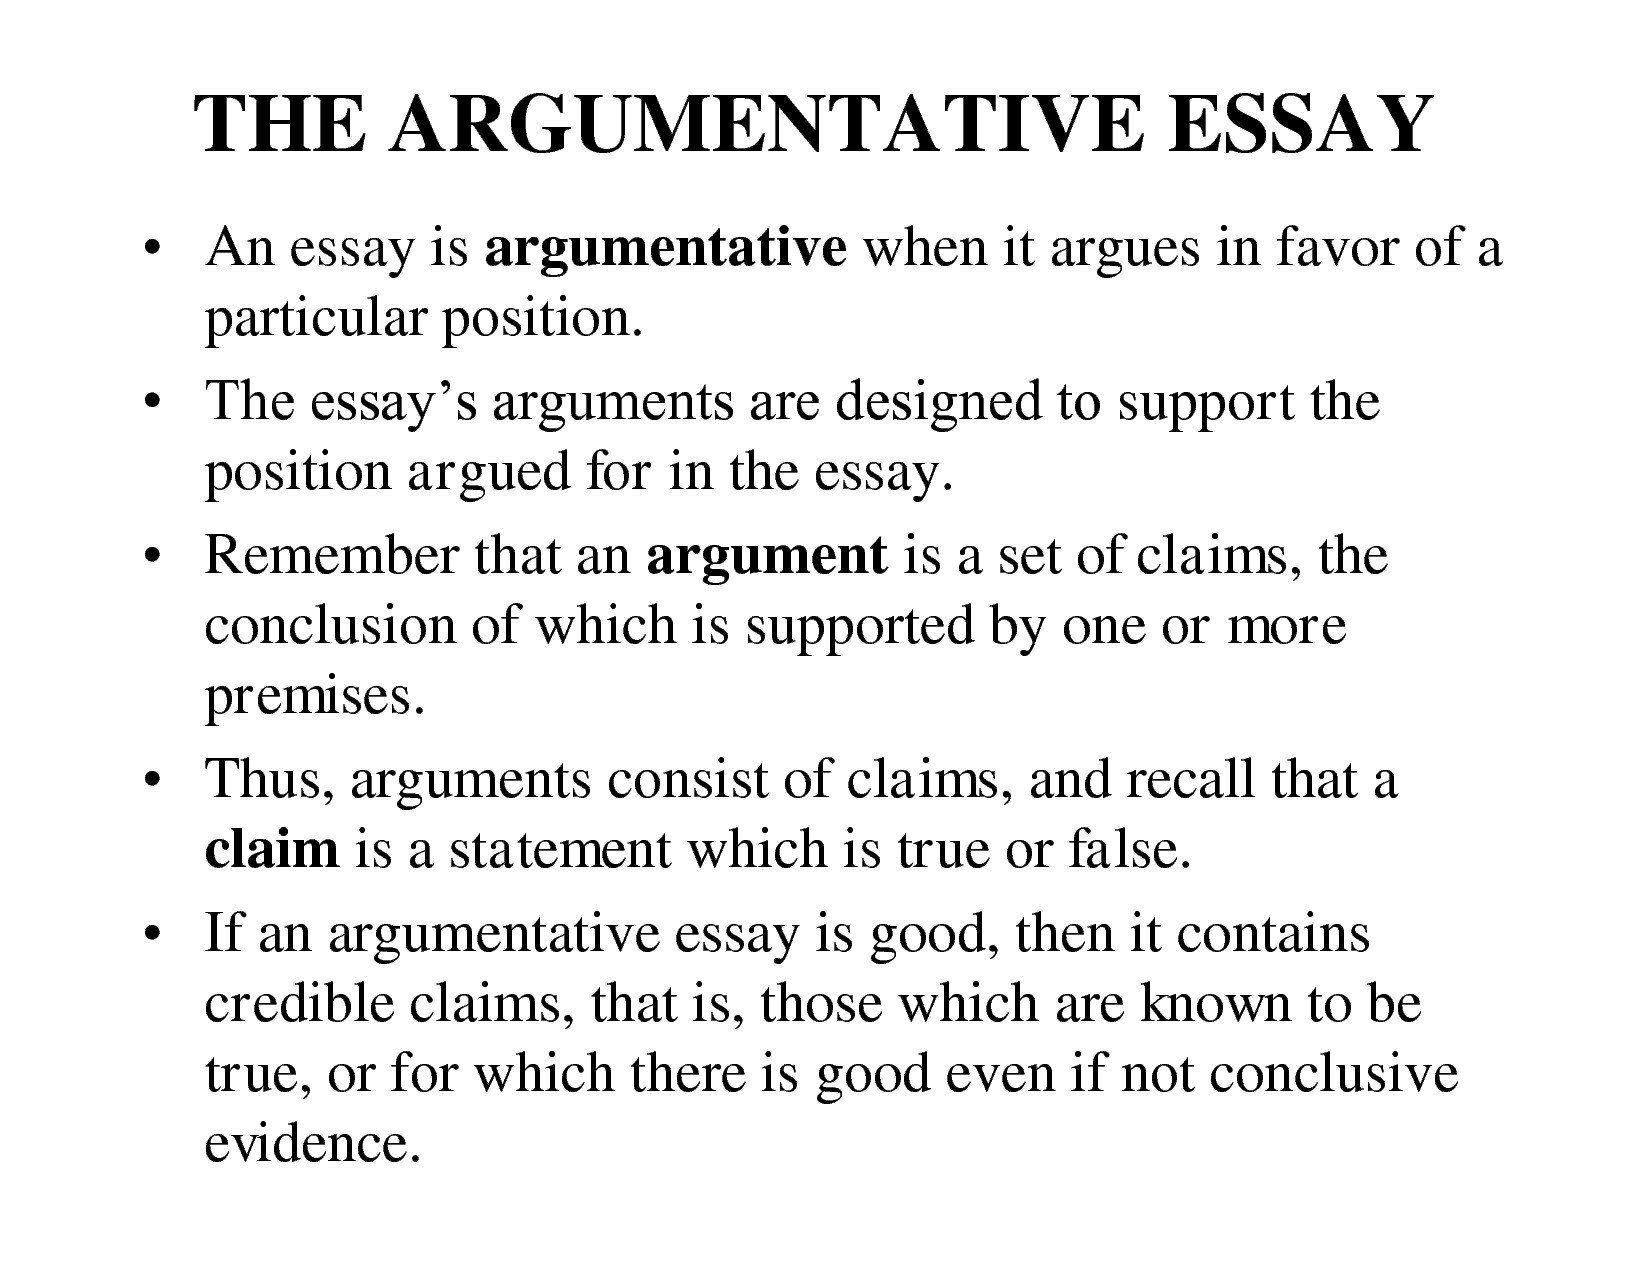 Conclusion Paragraph Examples For Argumentative Essay | World Of intended for Conclusion Paragraph Examples 20670